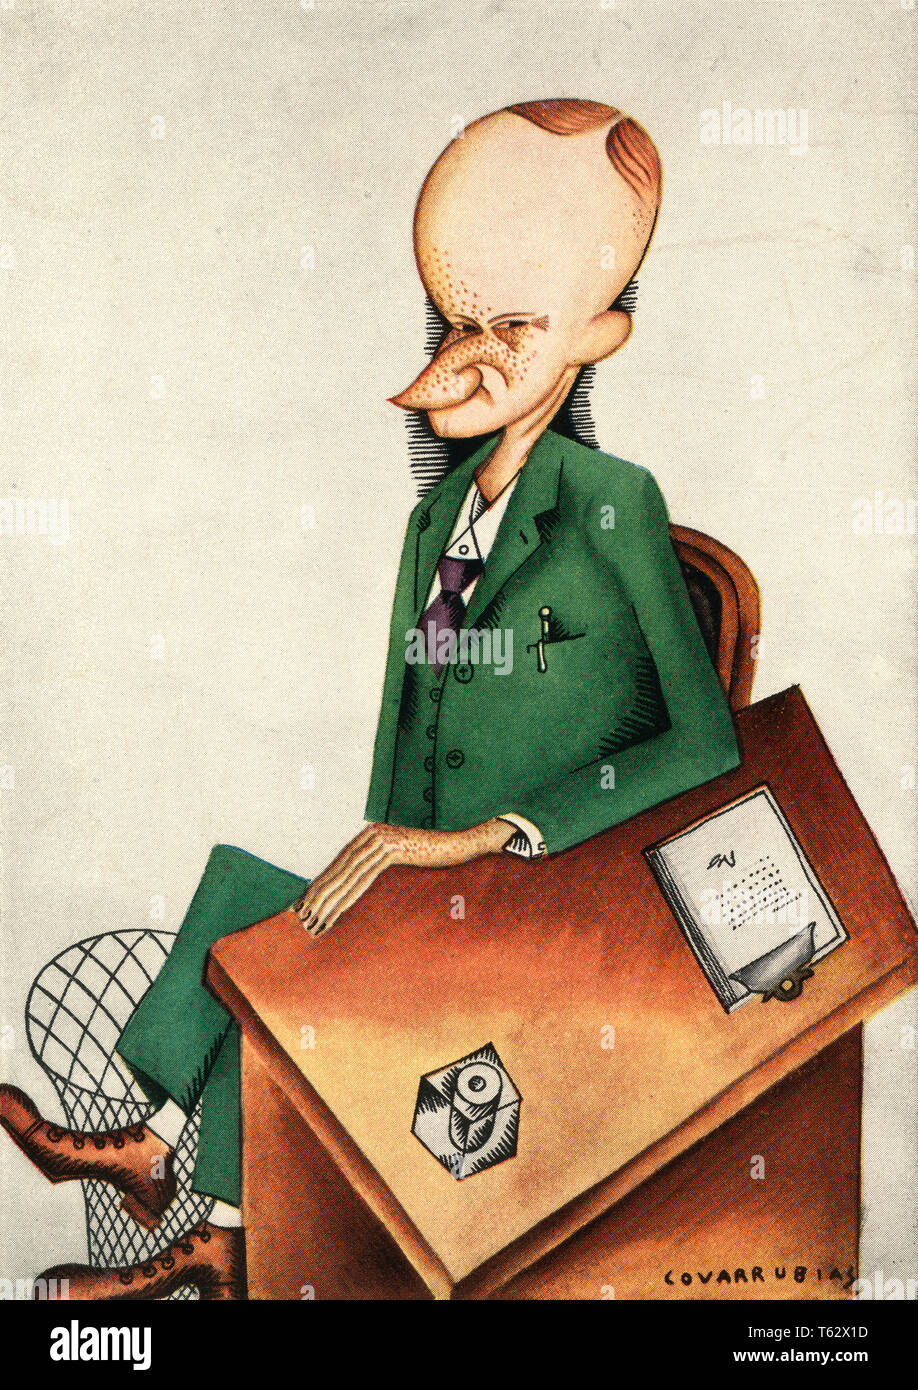 1920s CARICATURE AMERICAN PRESIDENT CALVIN COOLIDGE BY COVARRUBIAS COLOR HALFTONE - kh13297 CPC001 HARS CONCEPTUAL COOLIDGE SNEER CALVIN CARICATURE PARODY SATIRE CAUCASIAN ETHNICITY OLD FASHIONED - Stock Image